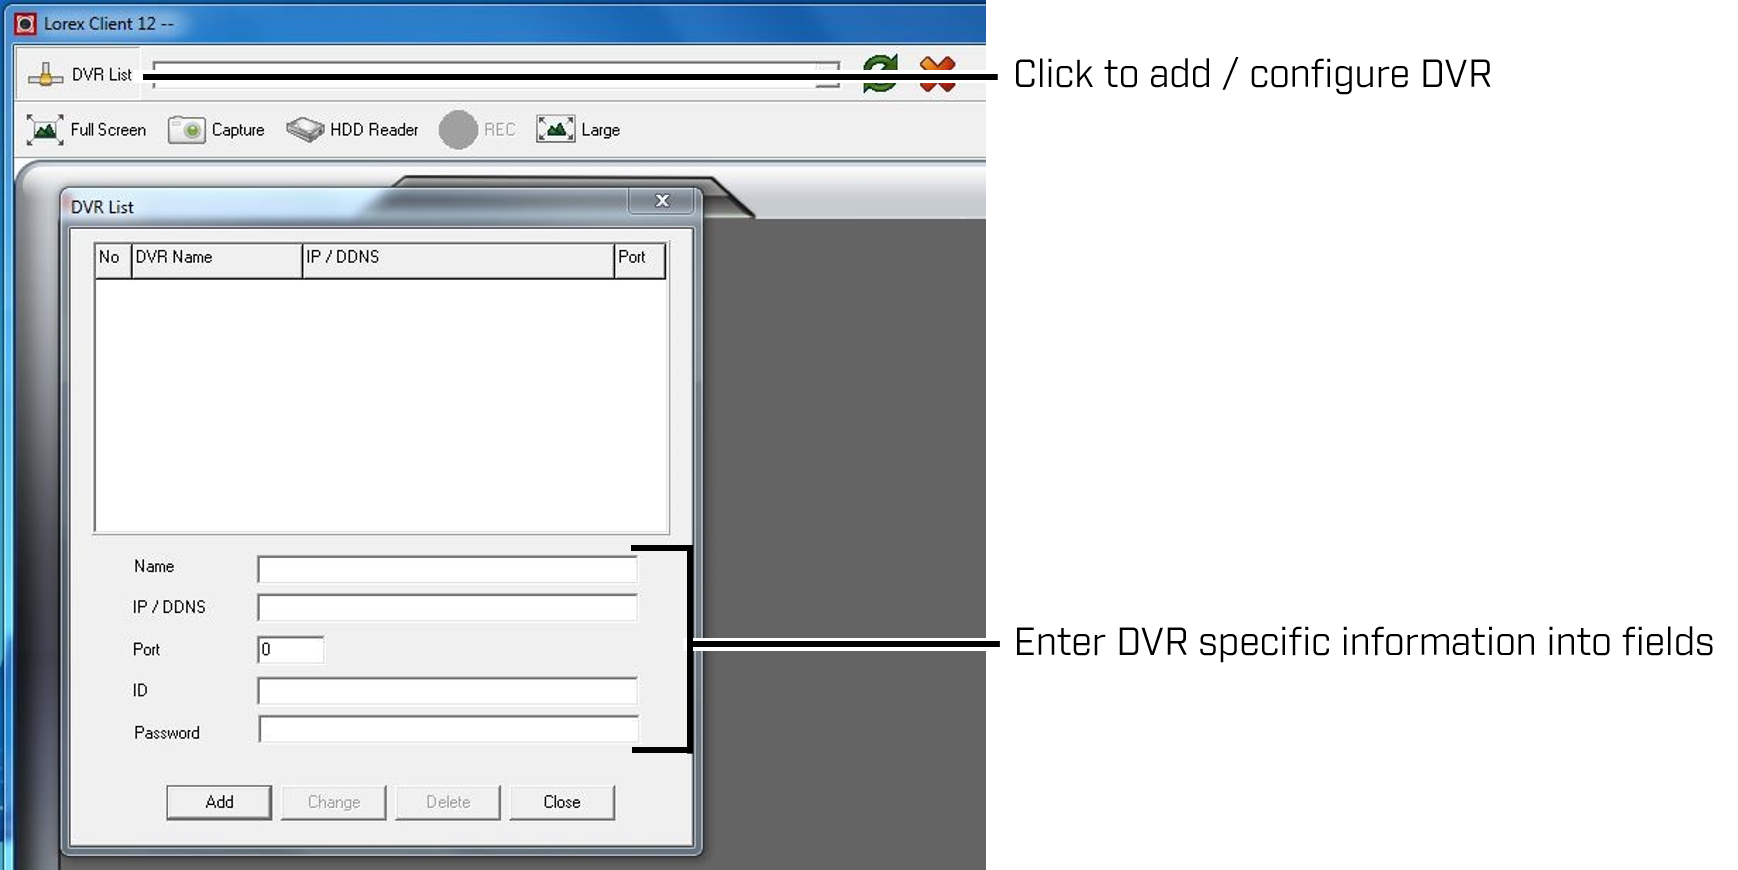 Configuring Lorex Client 12 Software